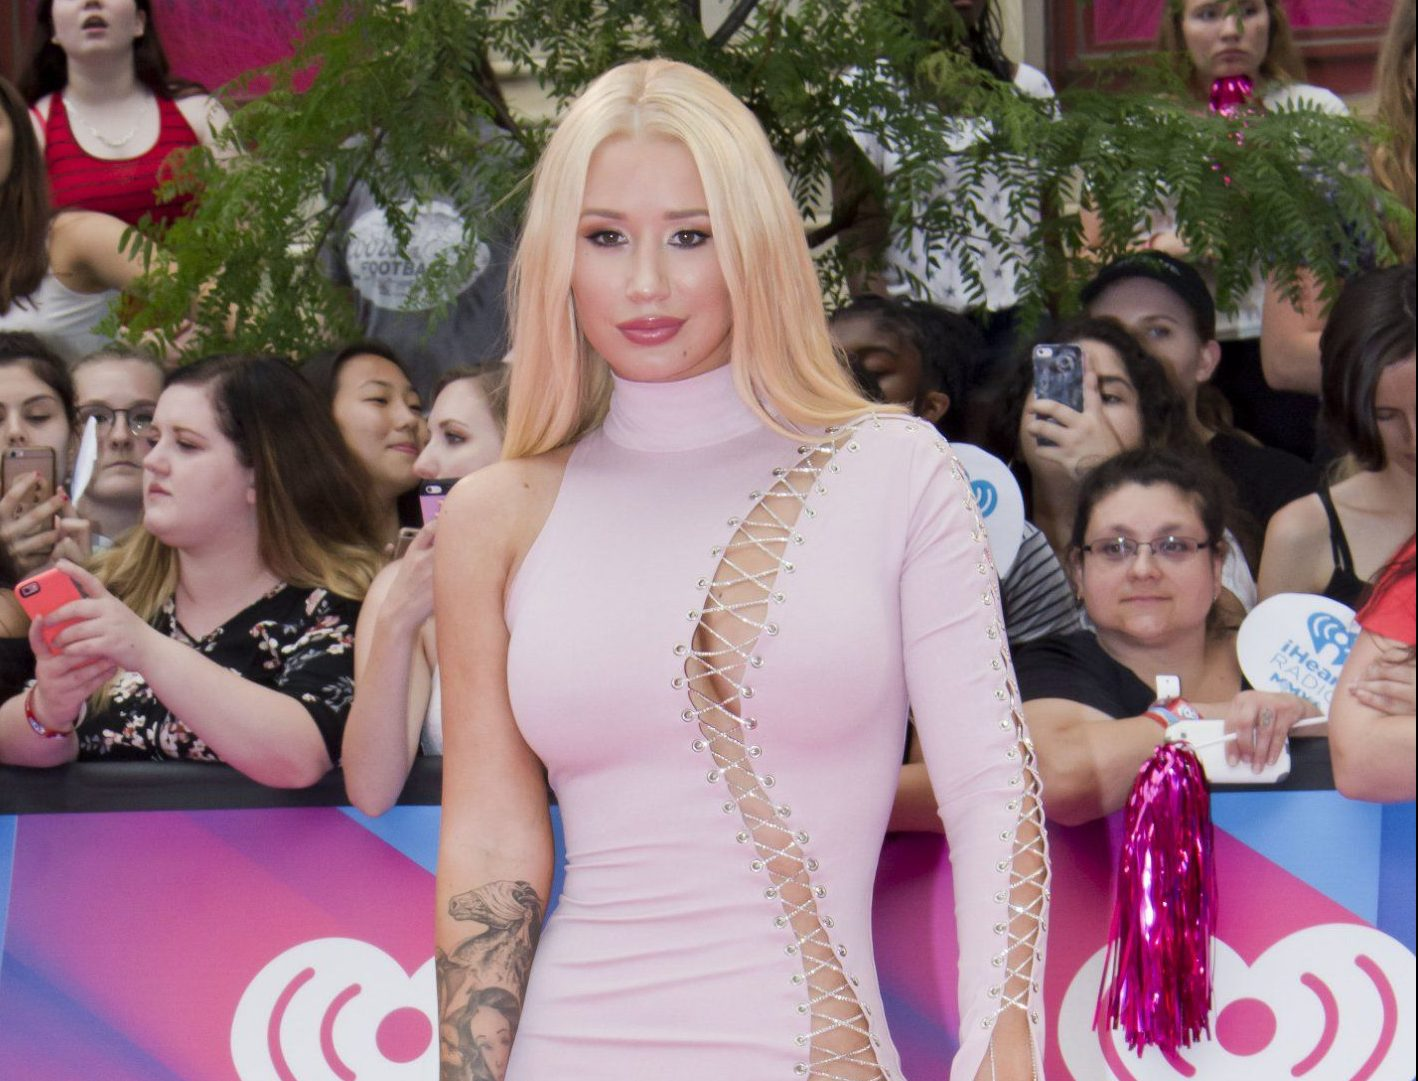 Iggy Azalea 'being sued for $300k over unpaid credit card bill'